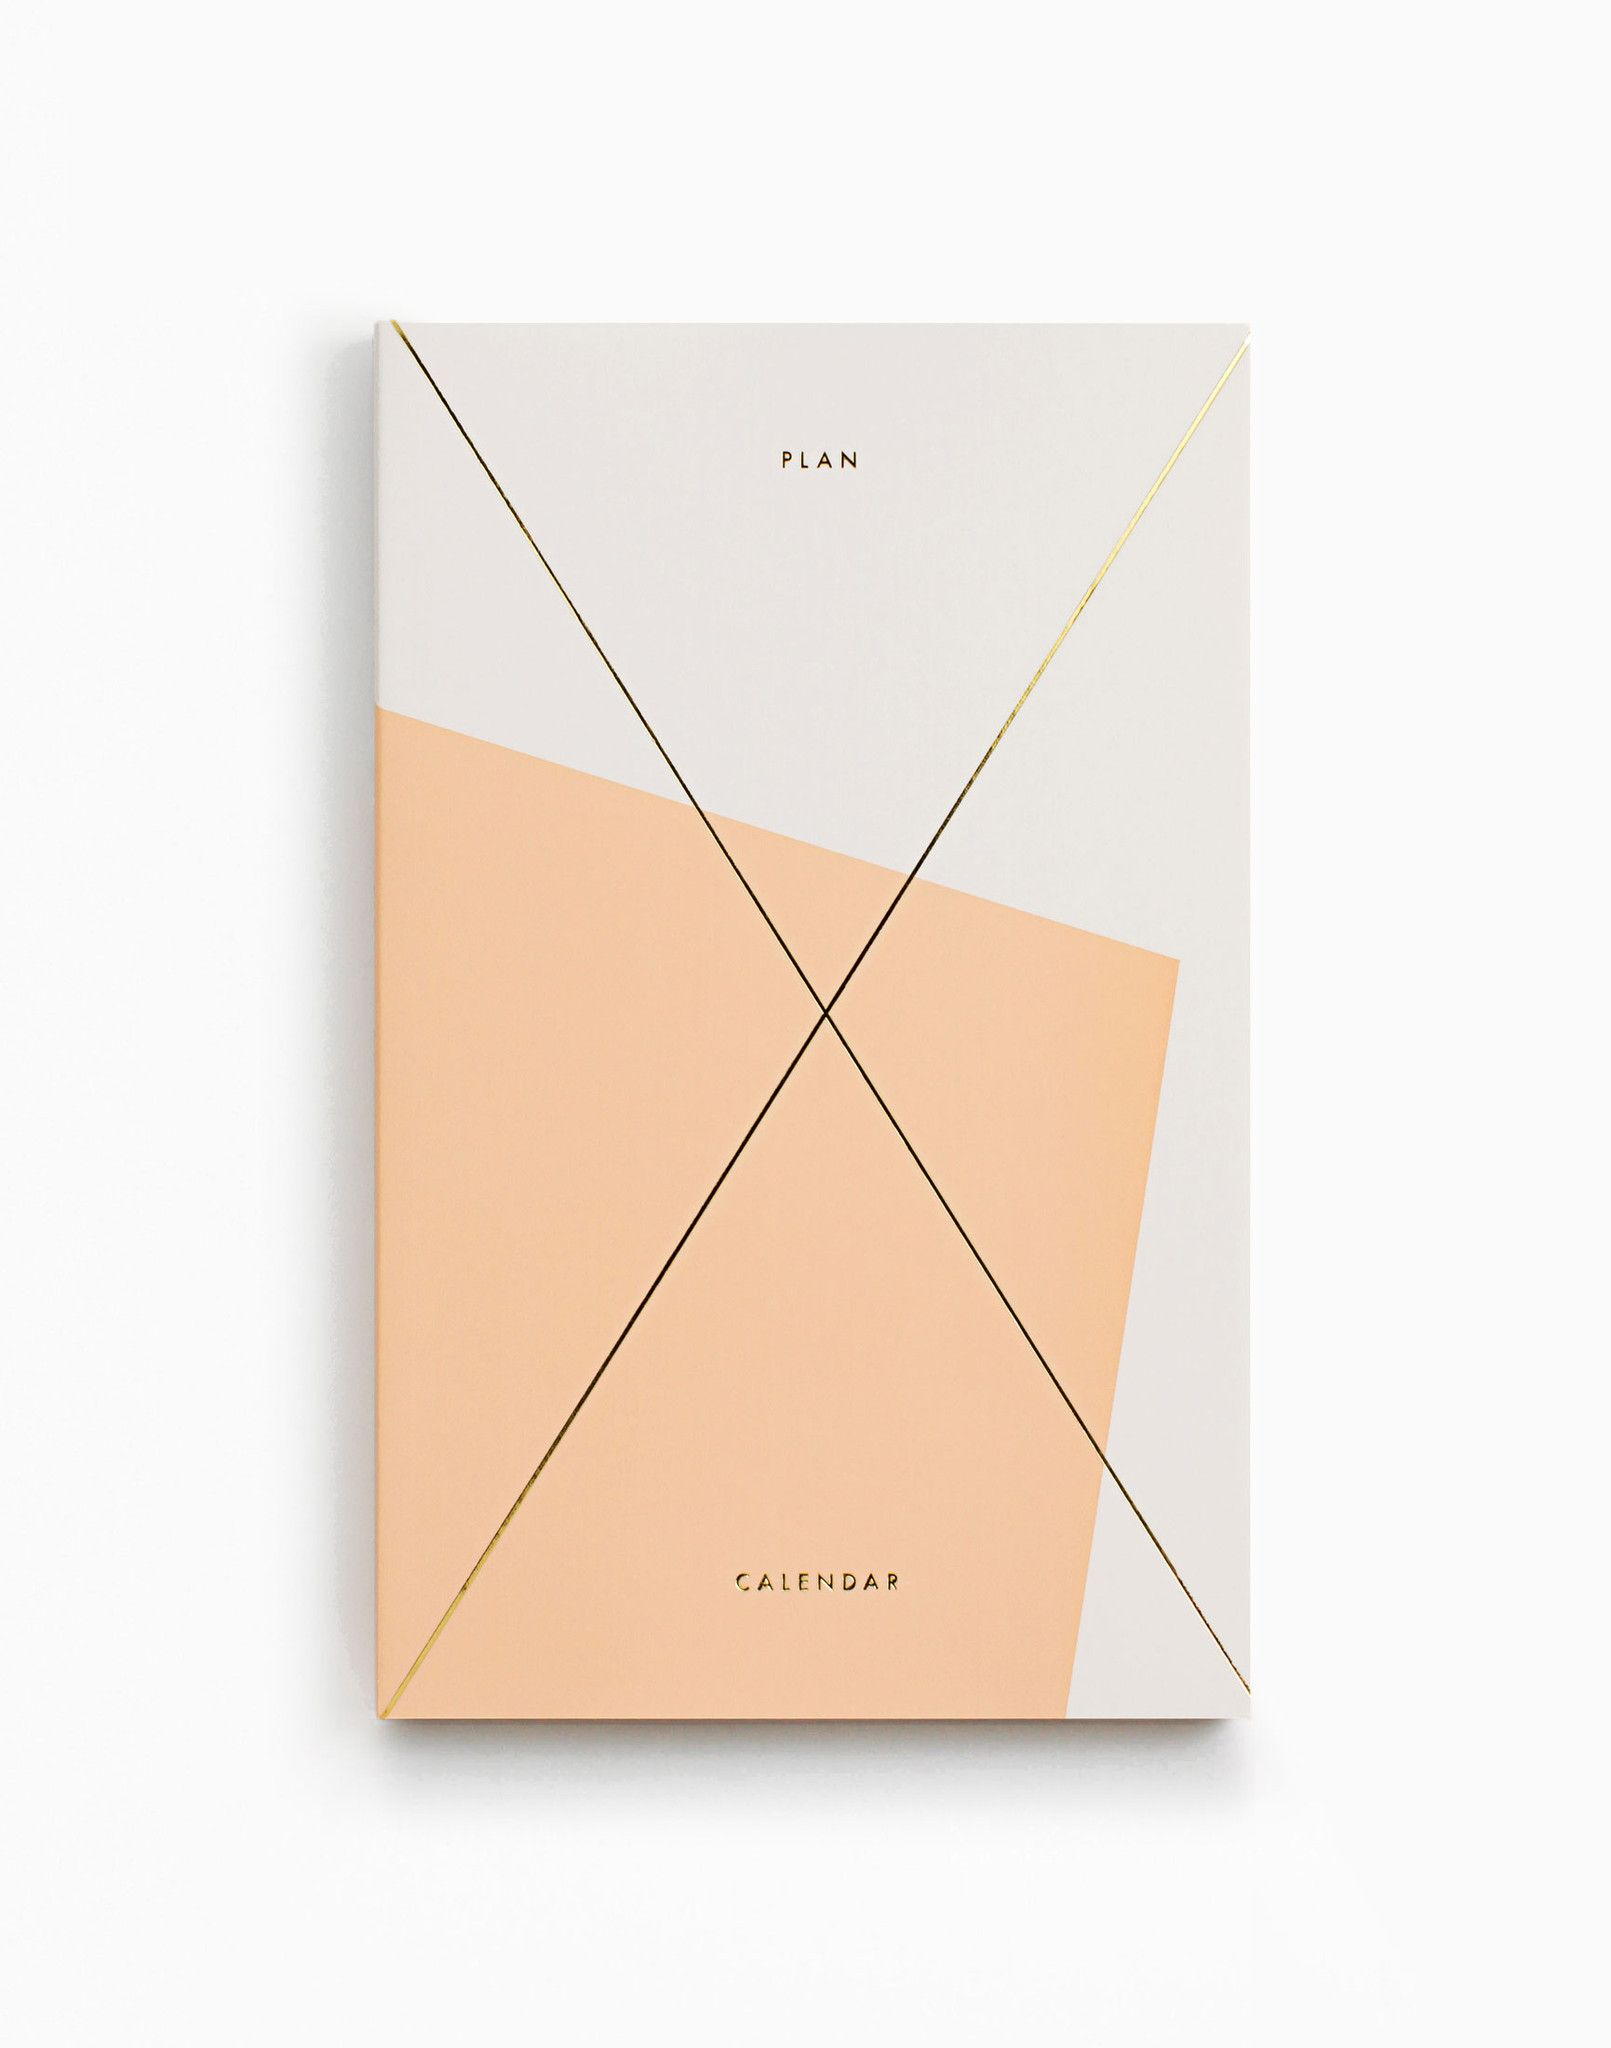 gold foil any year daily planner apricot graphic design